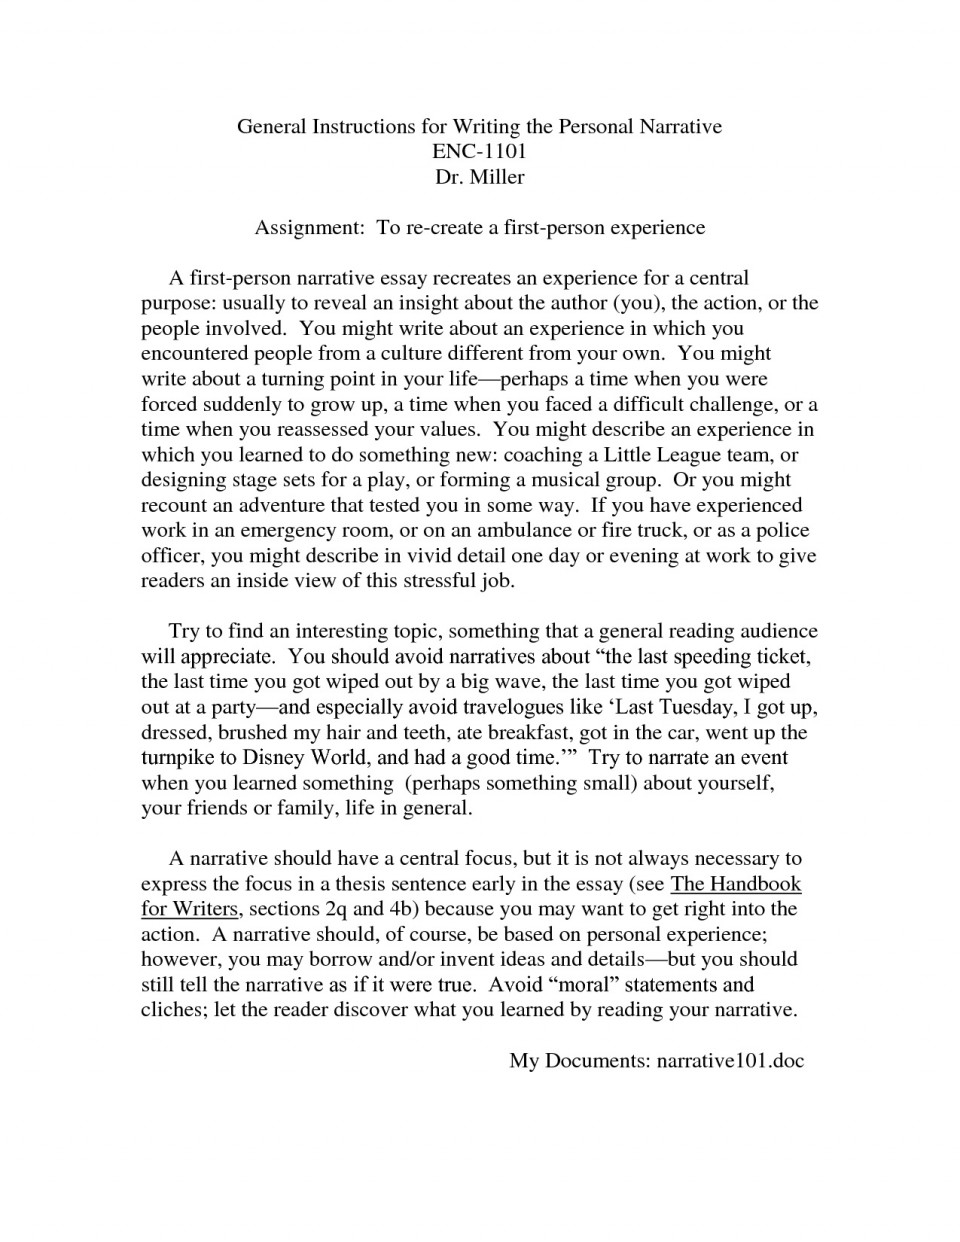 020 Personal Narrative Essayes Writings And Essays Writing Definition Help Me Write My How To Step By Video Pdfe Outline About Yourself Introduction Top Examples Free Samples Of Essay For Colleges 960